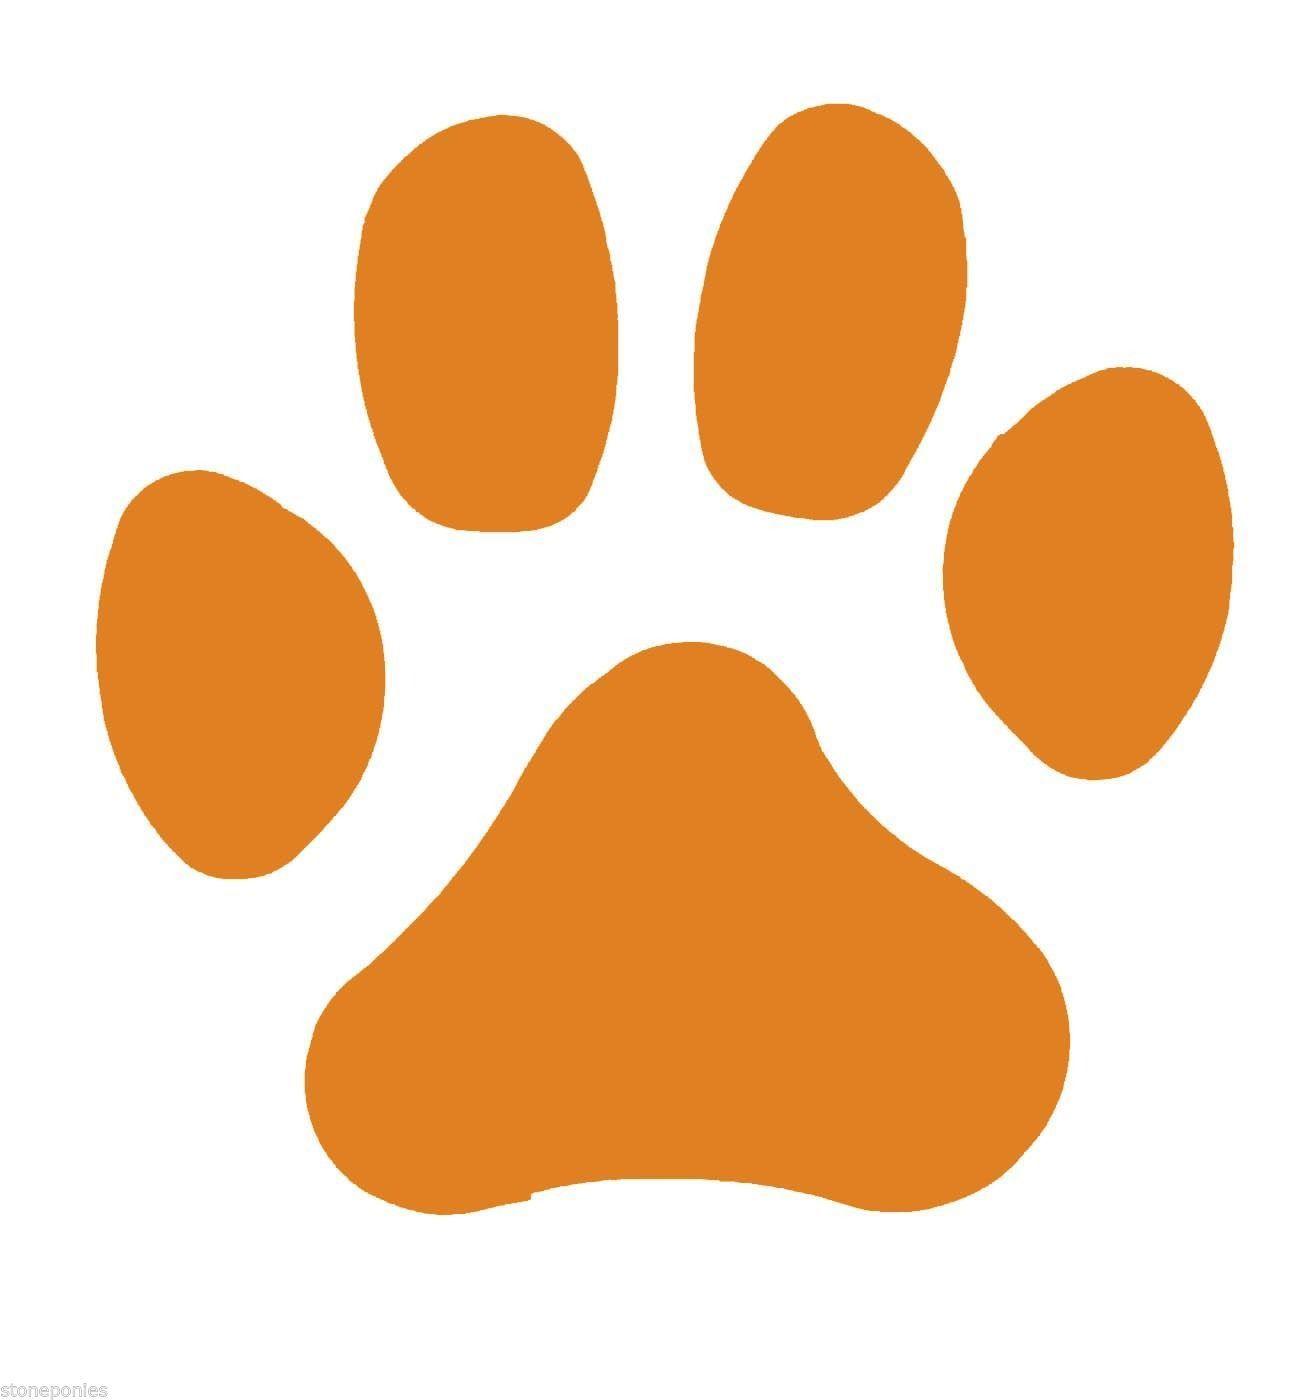 Paw Print Window Decal Pet Cat Dog  Choice Of Color On A. Plumber Banners. Sectarian Murals. Personalized Wedding Banners. Reef Murals. Silver Label. Plants Vs Zombies Signs Of Stroke. Ameriacn Banners. Childhood Depression Signs